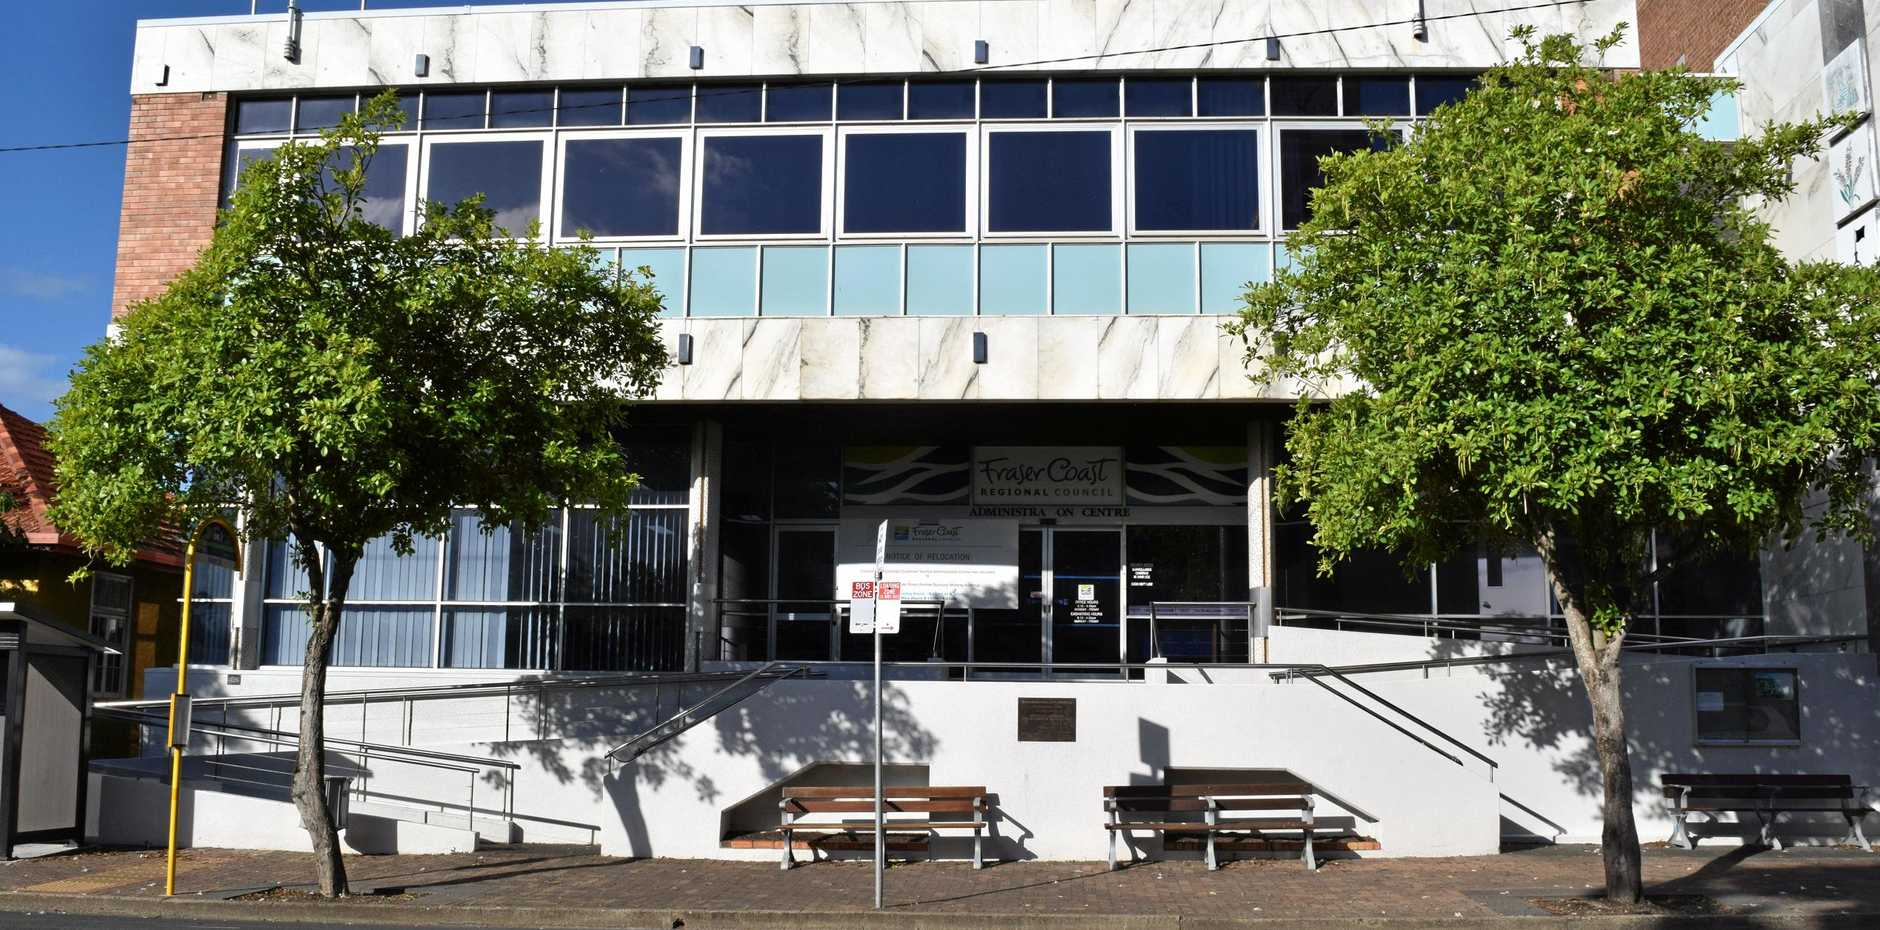 KNOCKING IT DOWN: The council's old administration building in Maryborough will be demolished and a new one built in town after a council vote at their January meeting.